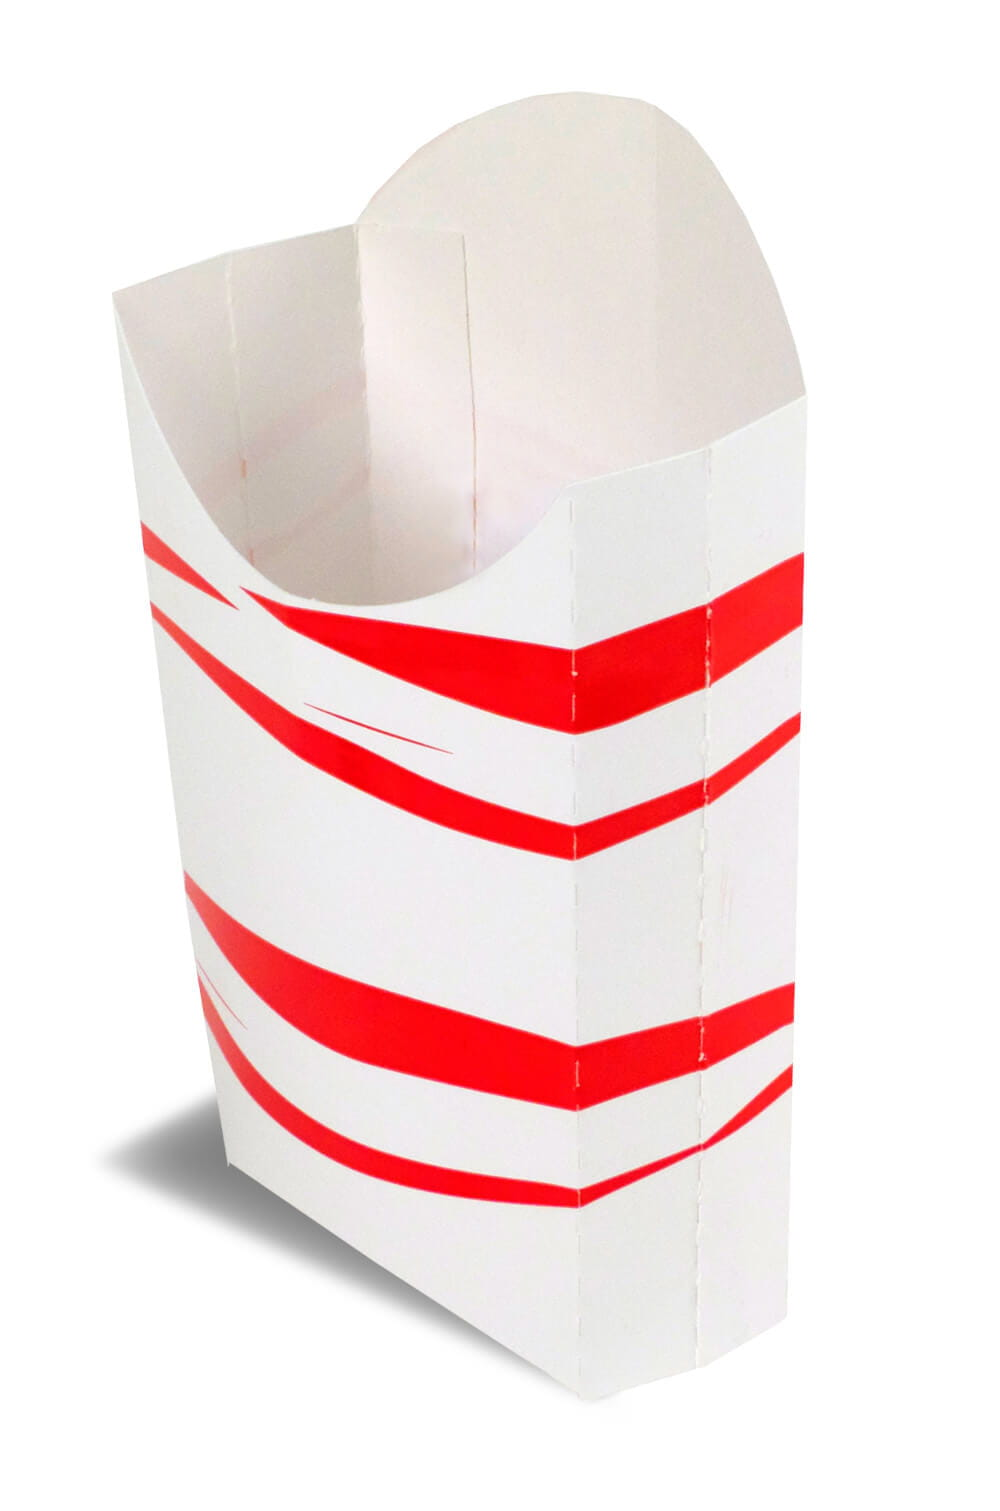 A red and white open FR81 takeout box.